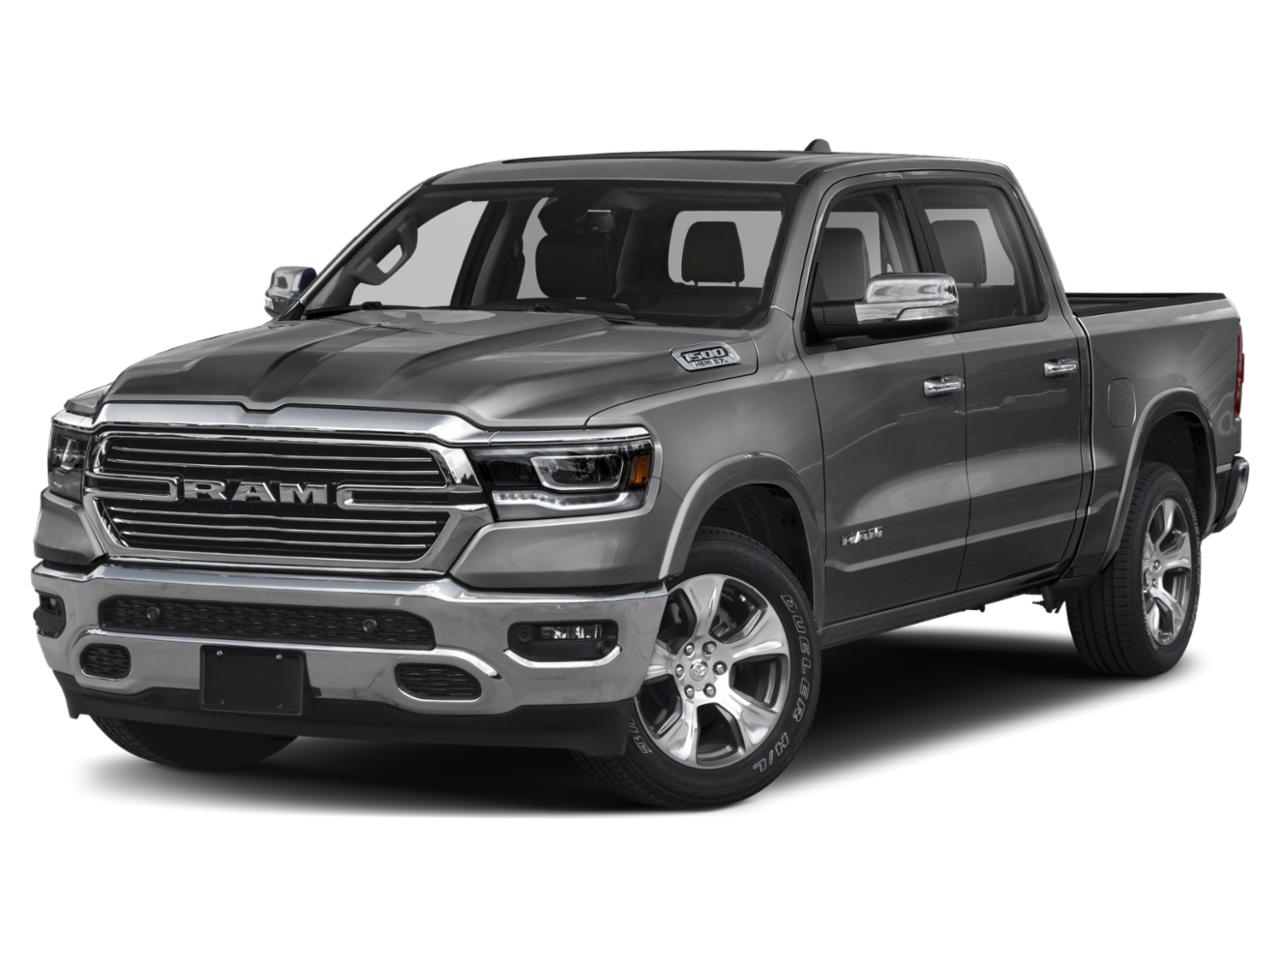 2020 Ram 1500 Vehicle Photo in Oshkosh, WI 54904